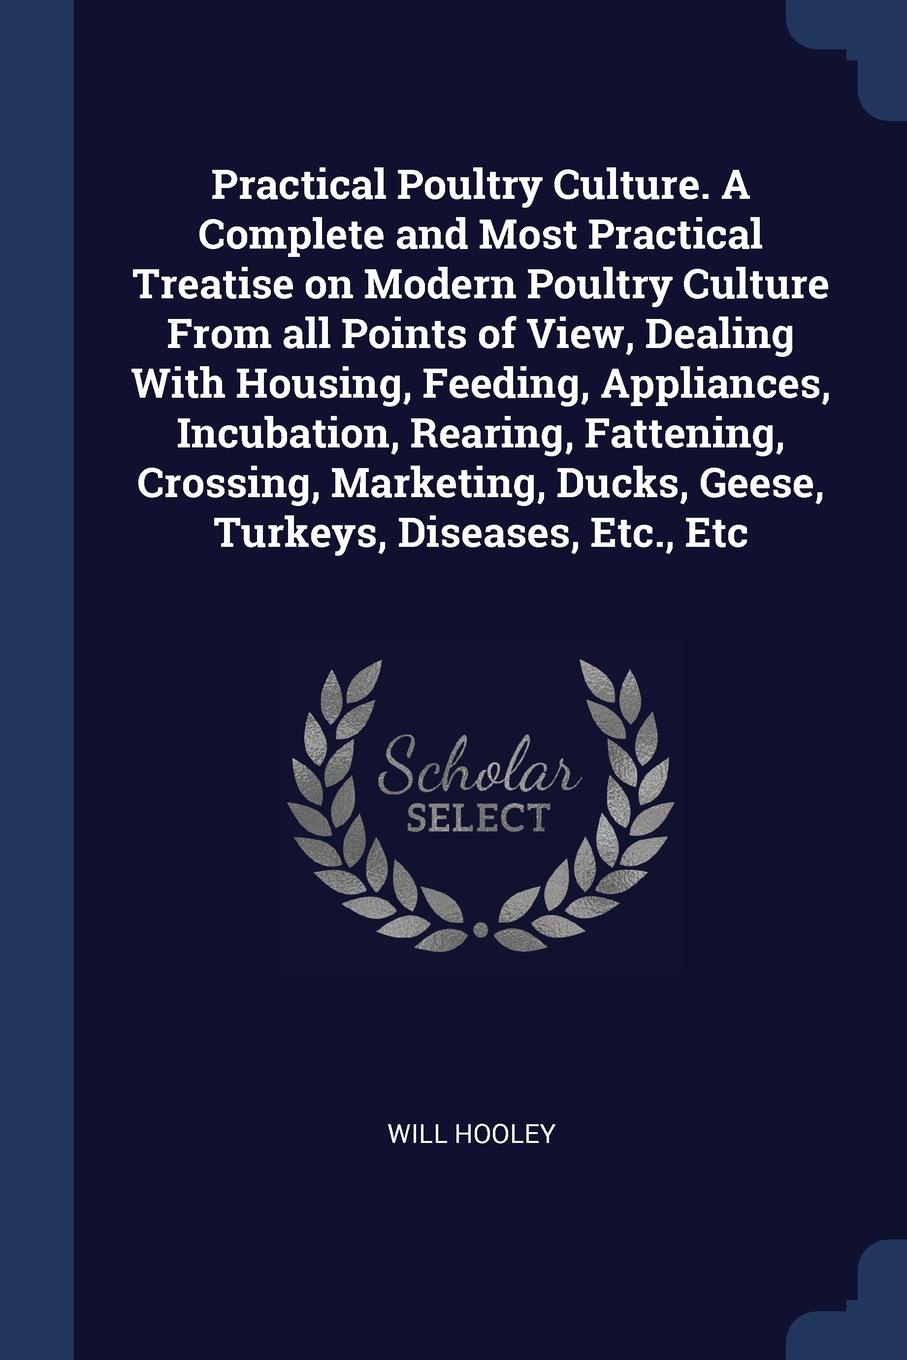 Will Hooley Practical Poultry Culture. A Complete and Most Practical Treatise on Modern Poultry Culture From all Points of View, Dealing With Housing, Feeding, Appliances, Incubation, Rearing, Fattening, Crossing, Marketing, Ducks, Geese, Turkeys, Diseases, E... h will practical poultry culture